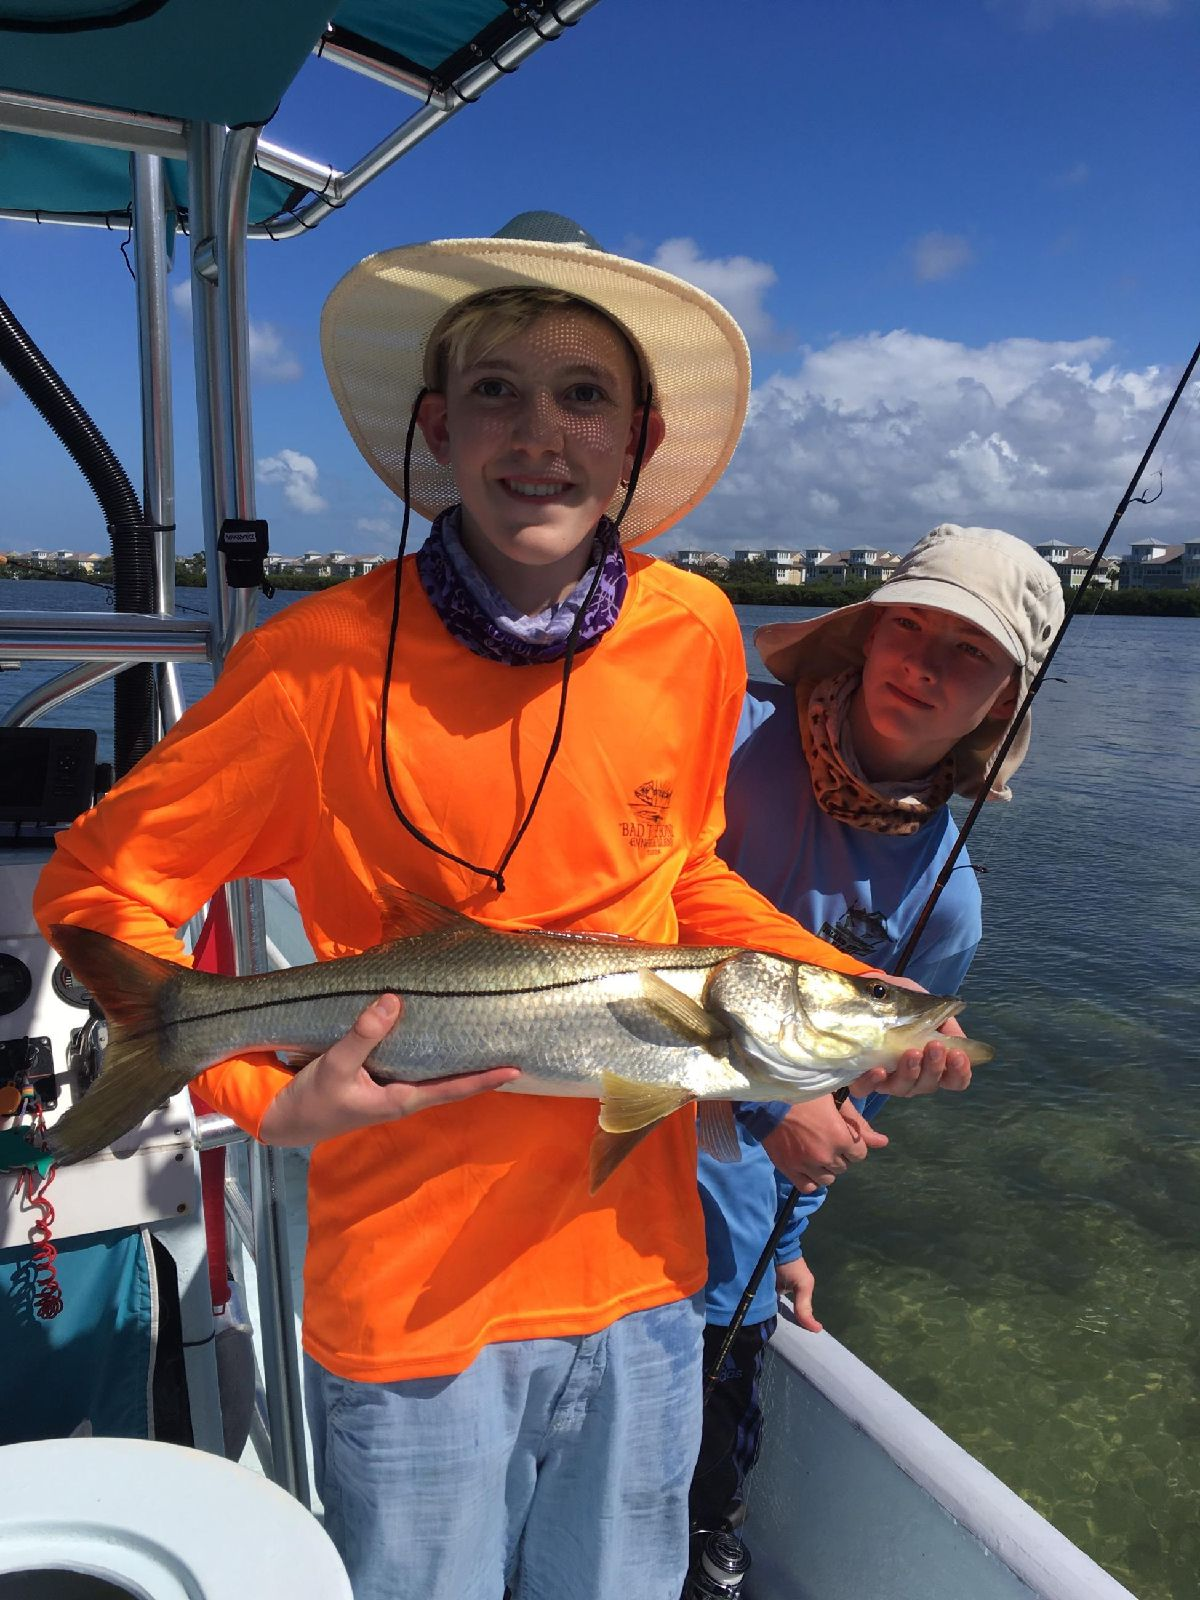 The snook were biting.